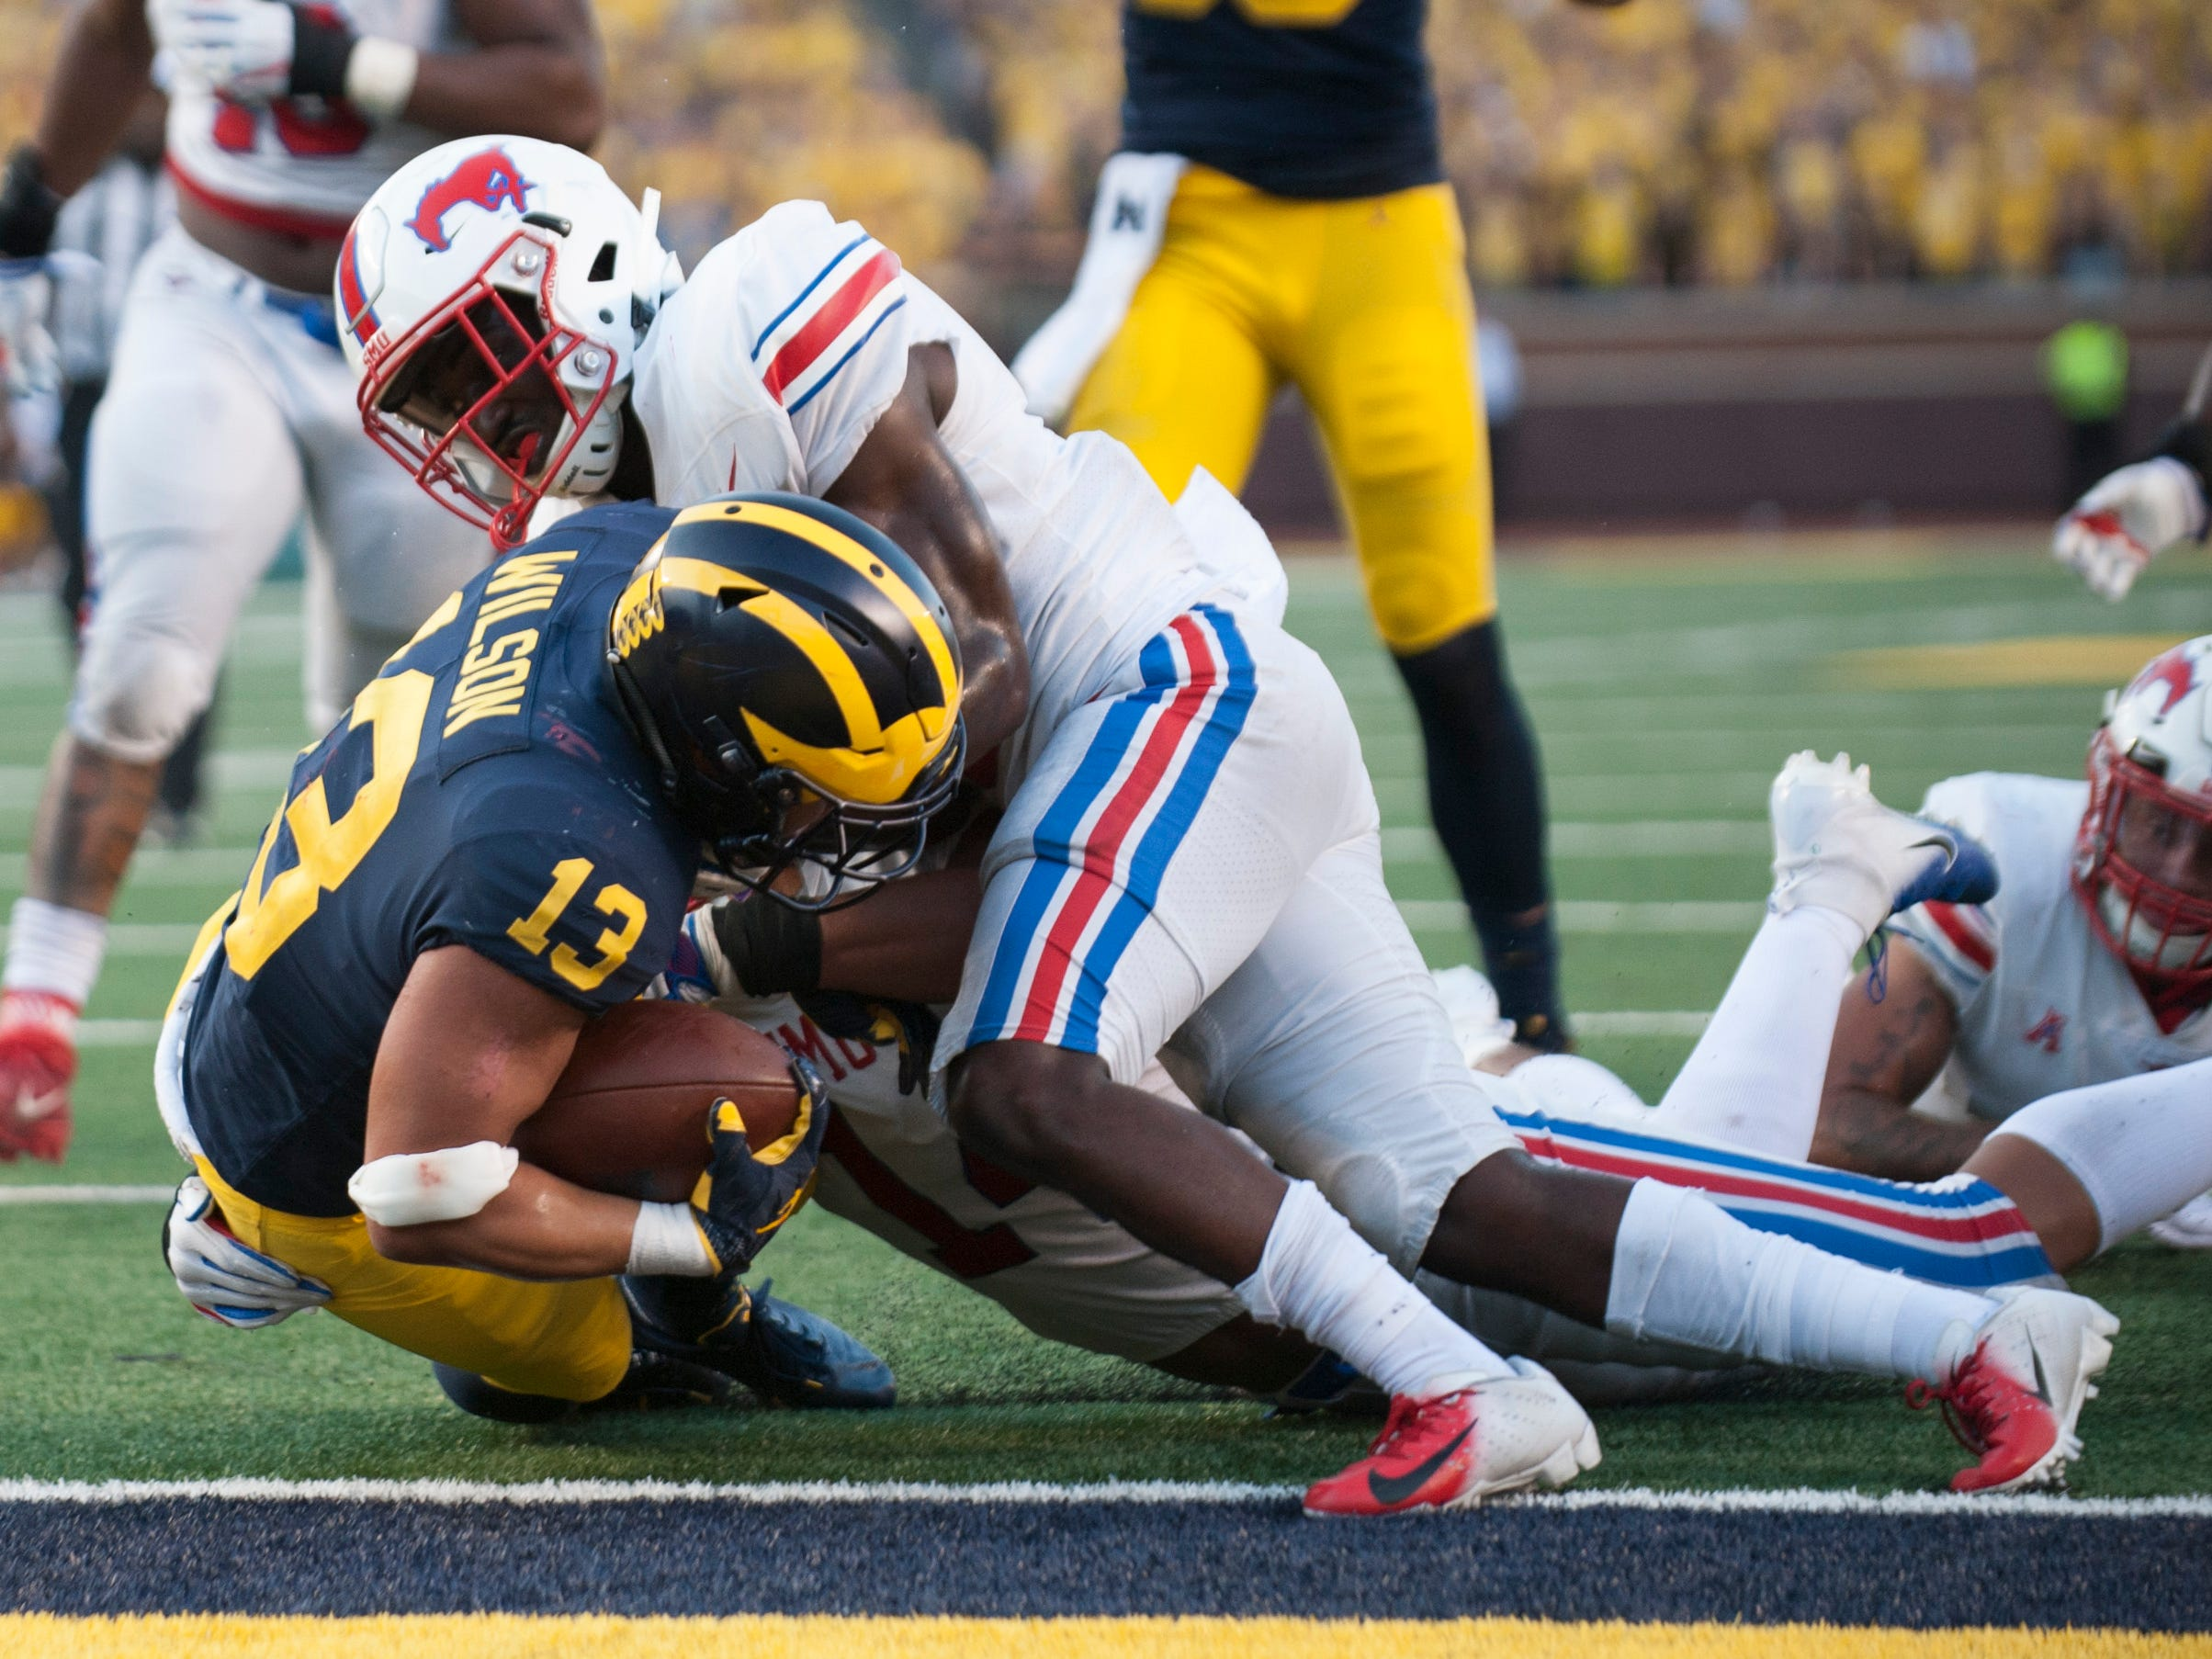 Michigan running back Tru Wilson bulls his way into the endzone on this nine-yard run in the fourth quarter. Wilson rushed for 53 yards on 11 carries and one touchdown.